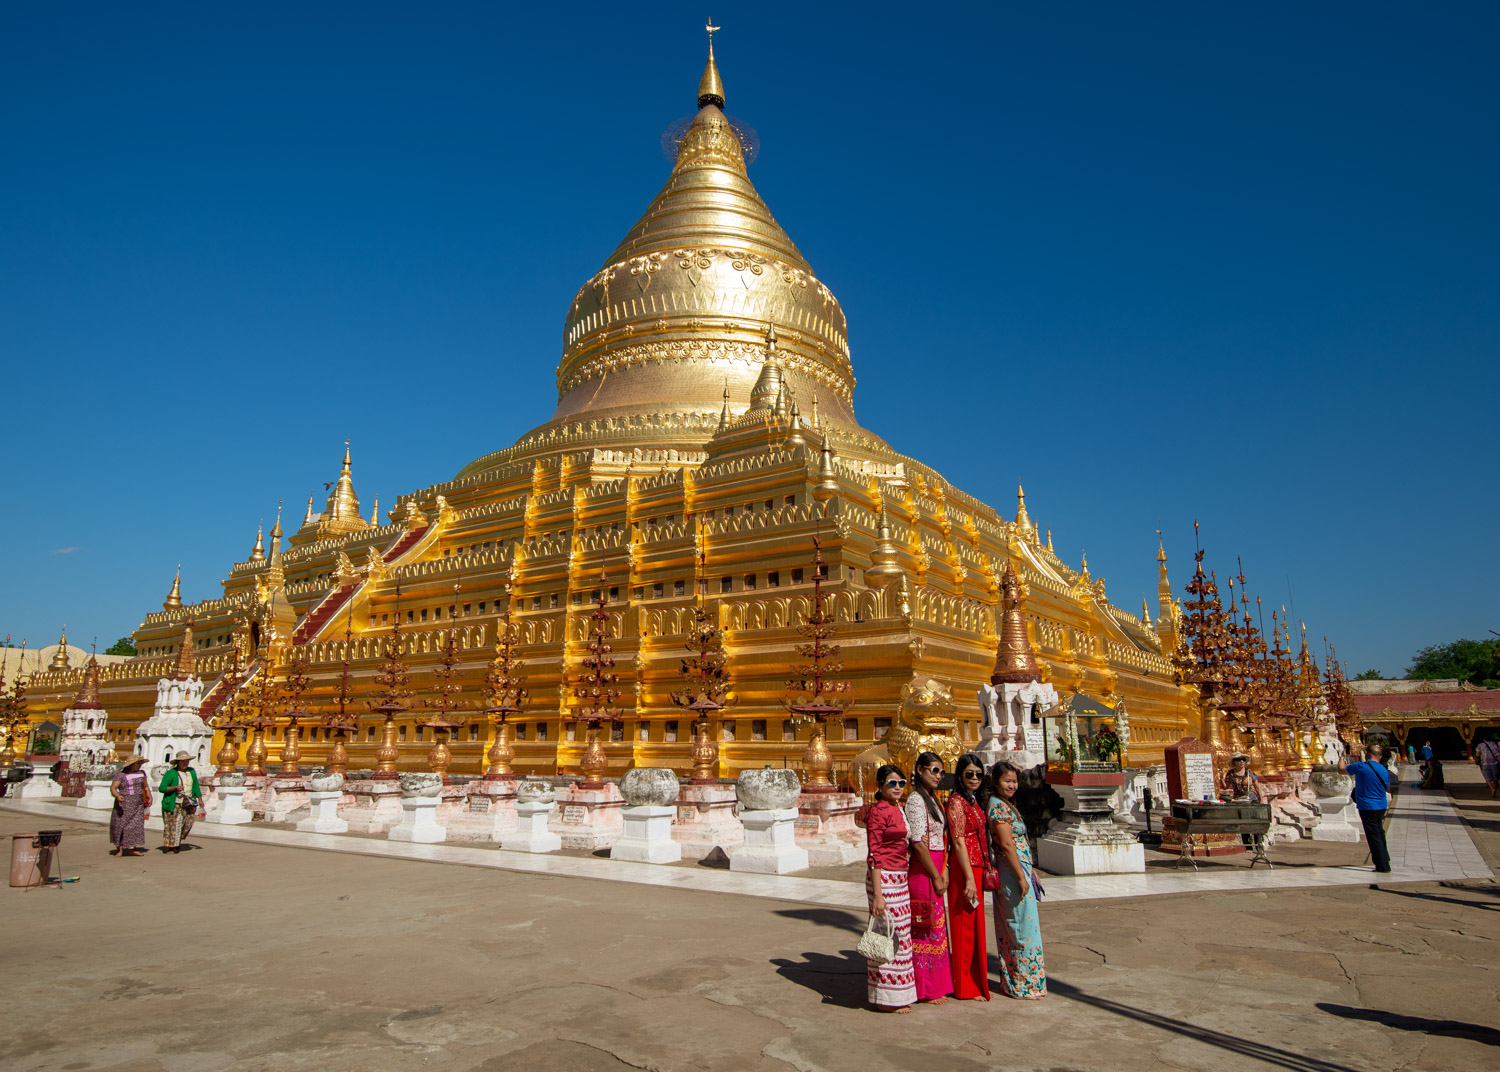 Girls pose in front of the Golden Shwezigon Pagoda in Bagan.